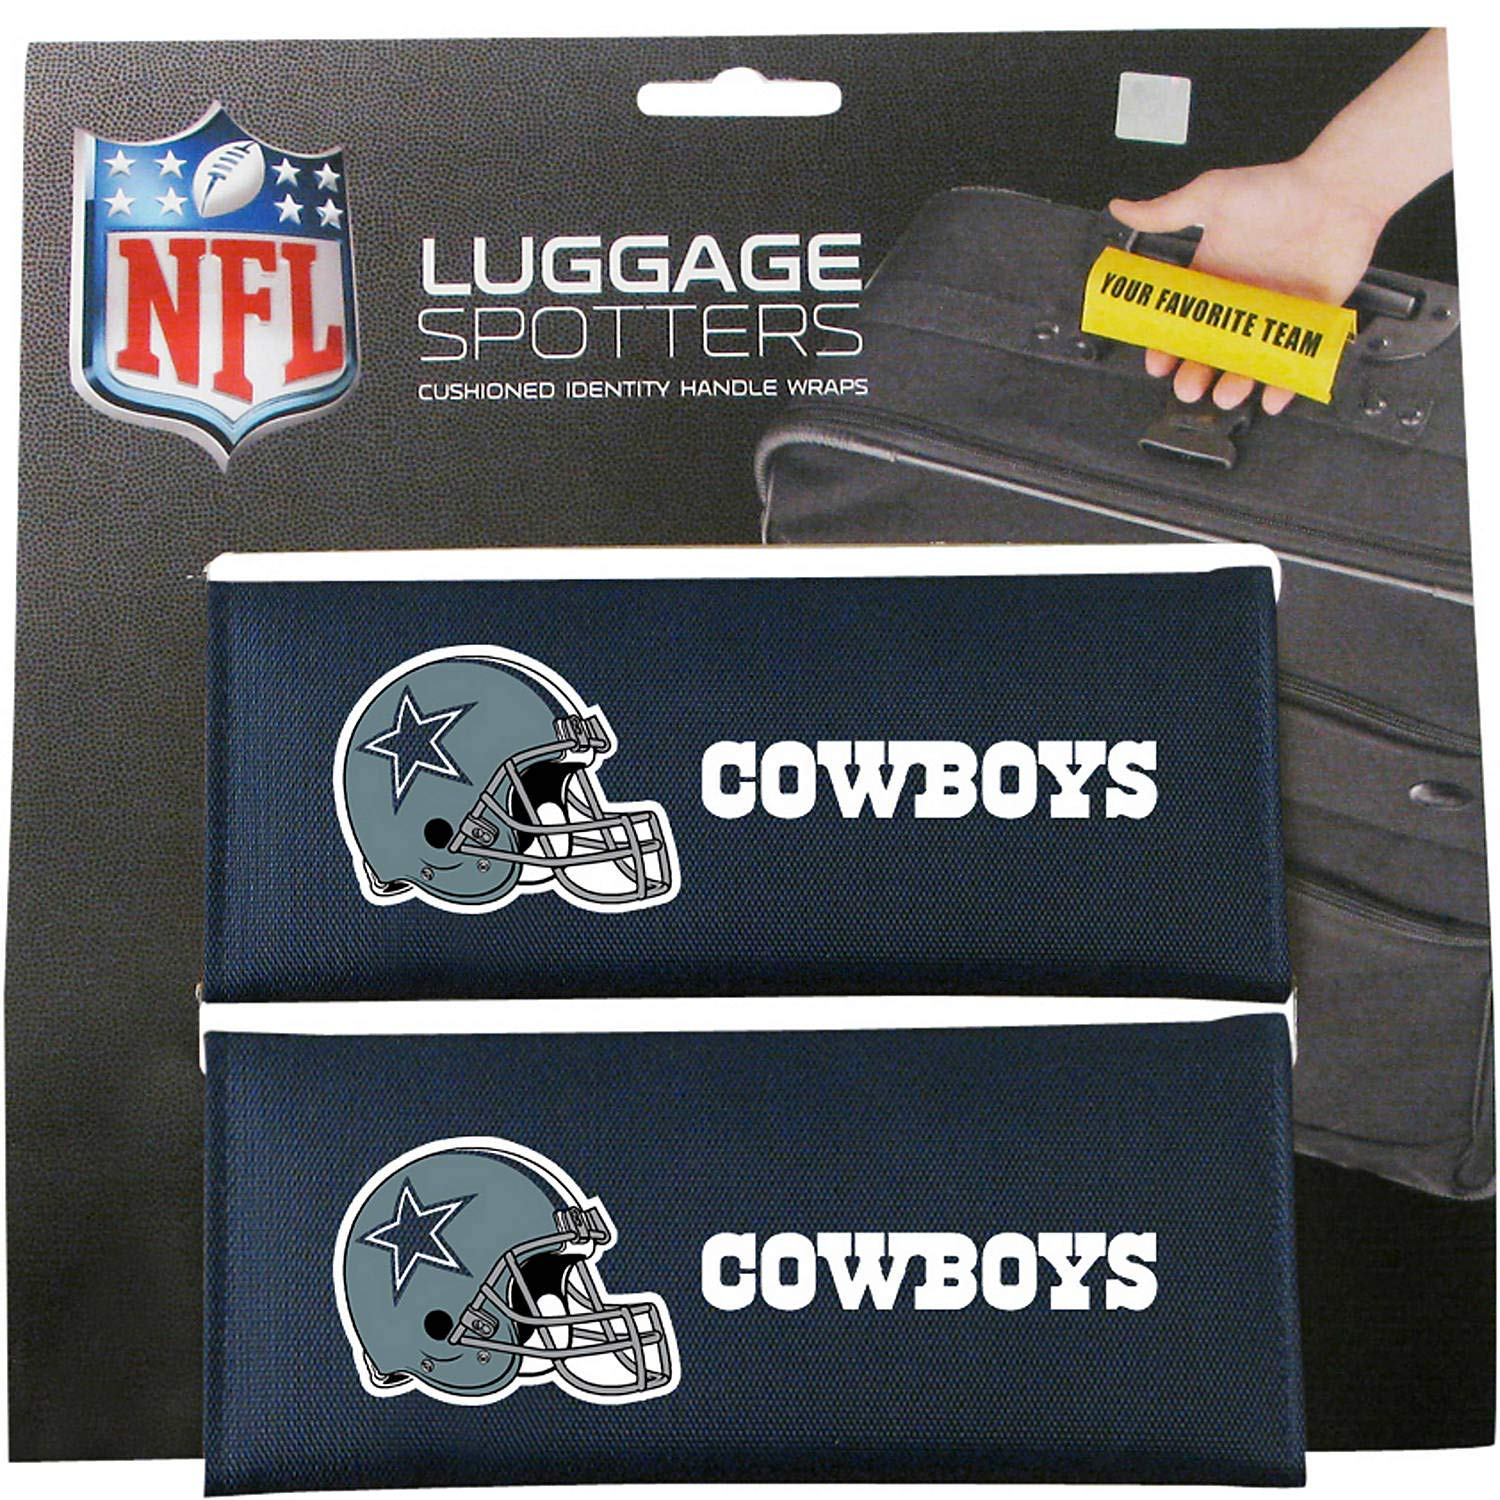 50% OFF! COWBOYS Luggage Spotter Suitcase Handle Wrap Bag Tag Locator with I.D. Pocket (2-pack) - CLOSEOUT! THEY ARE SELLING OUT FAST! China DALLCOWBOYS